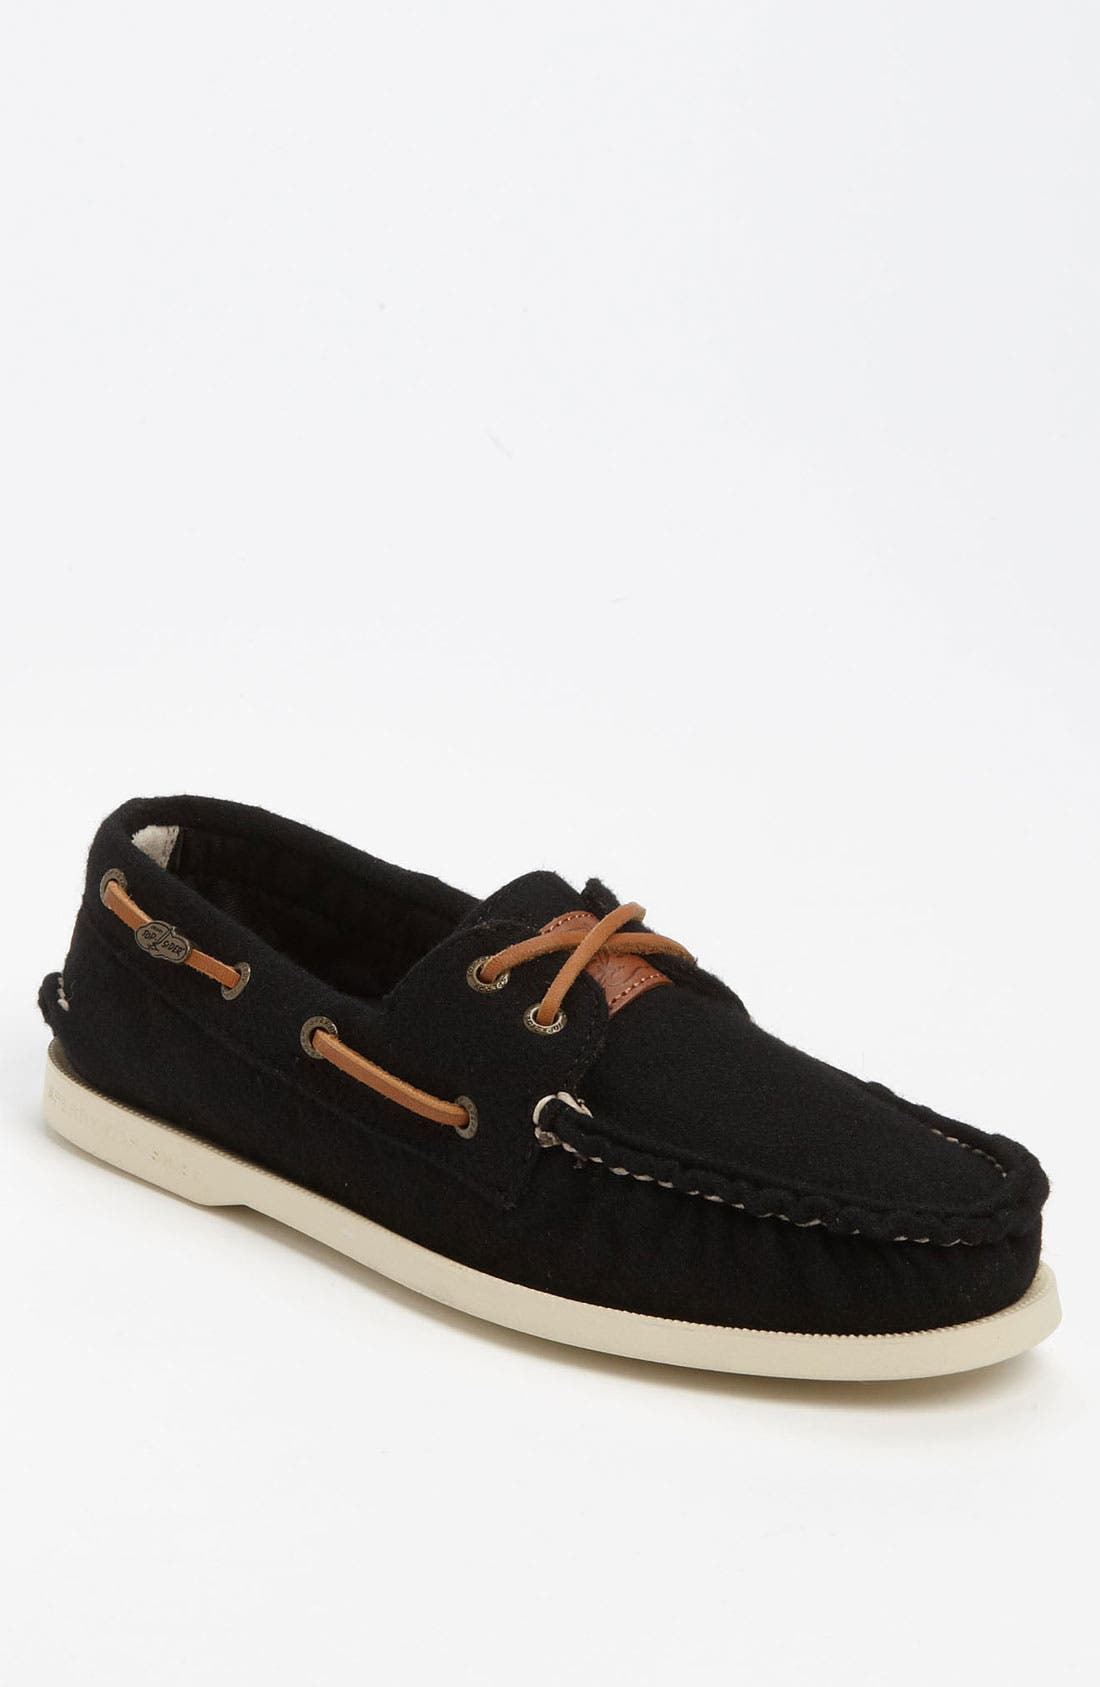 Main Image - Sperry Top-Sider® 'Fidelity - Authentic Original' Wool Boat Shoe